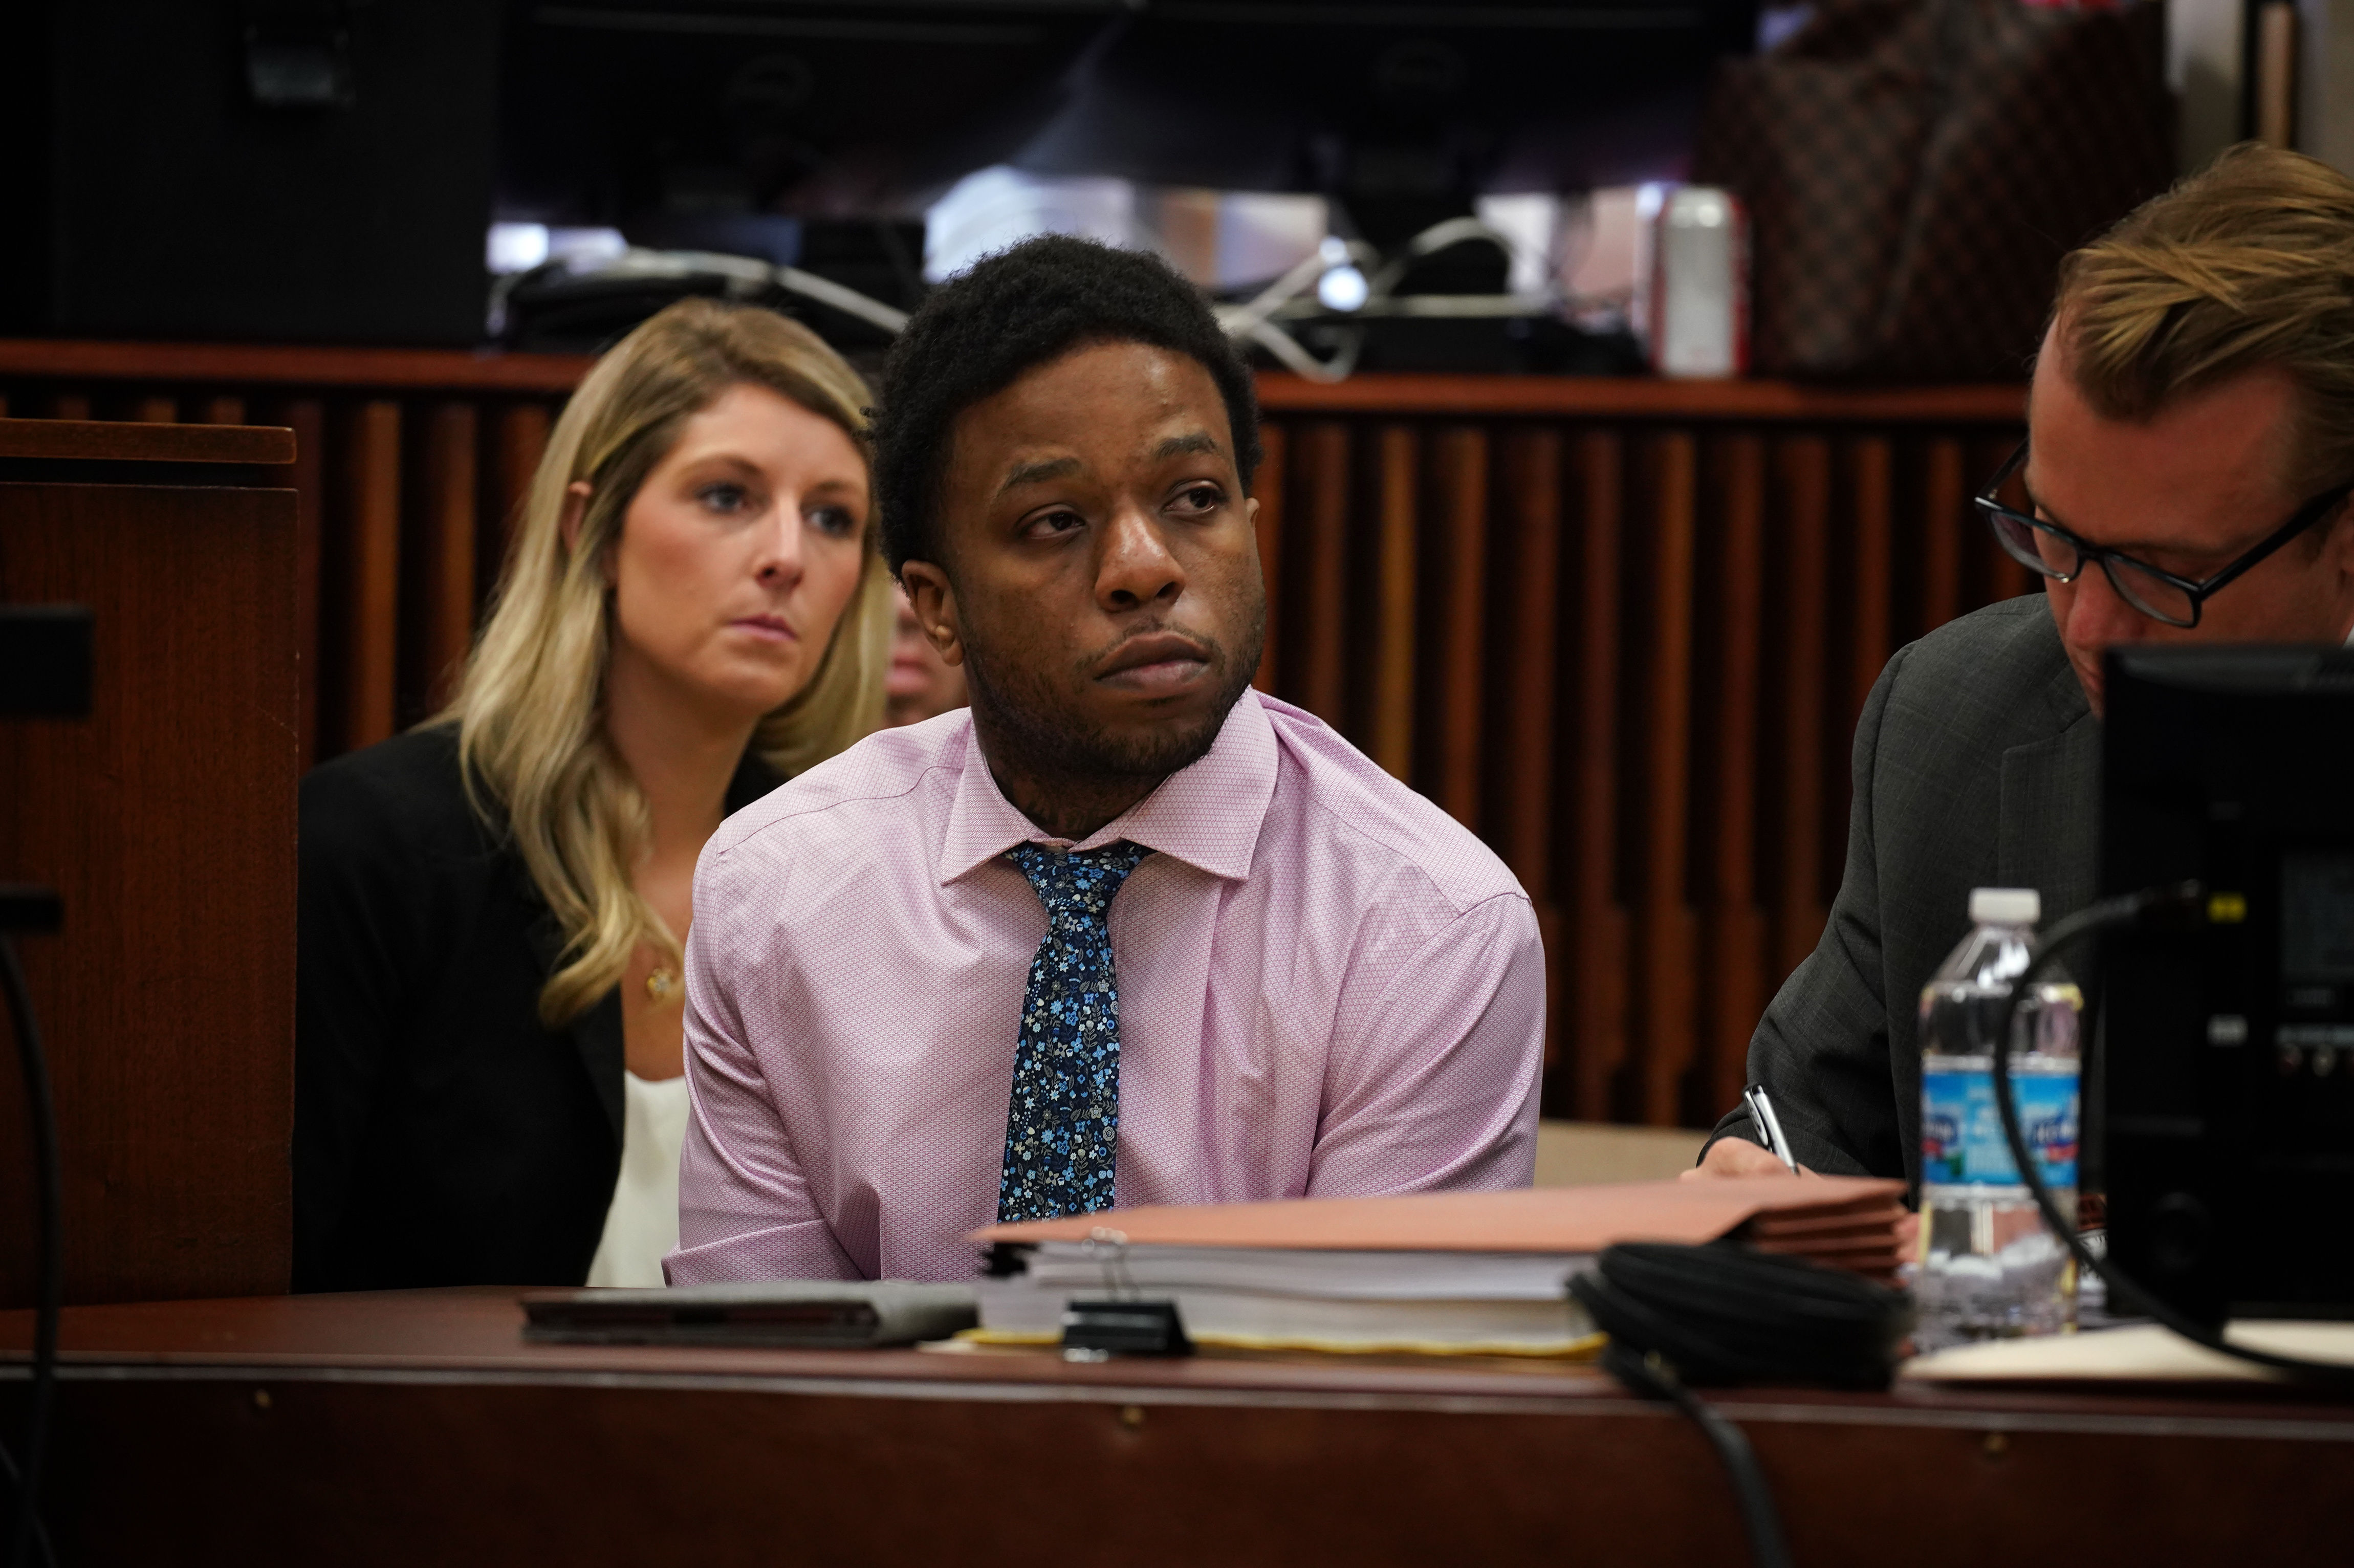 Corey Morgan, on trial for the murder of Tyshawn Lee, sits beside his lawyers Tuesday during opening statements at the Leighton Criminal Court Building.